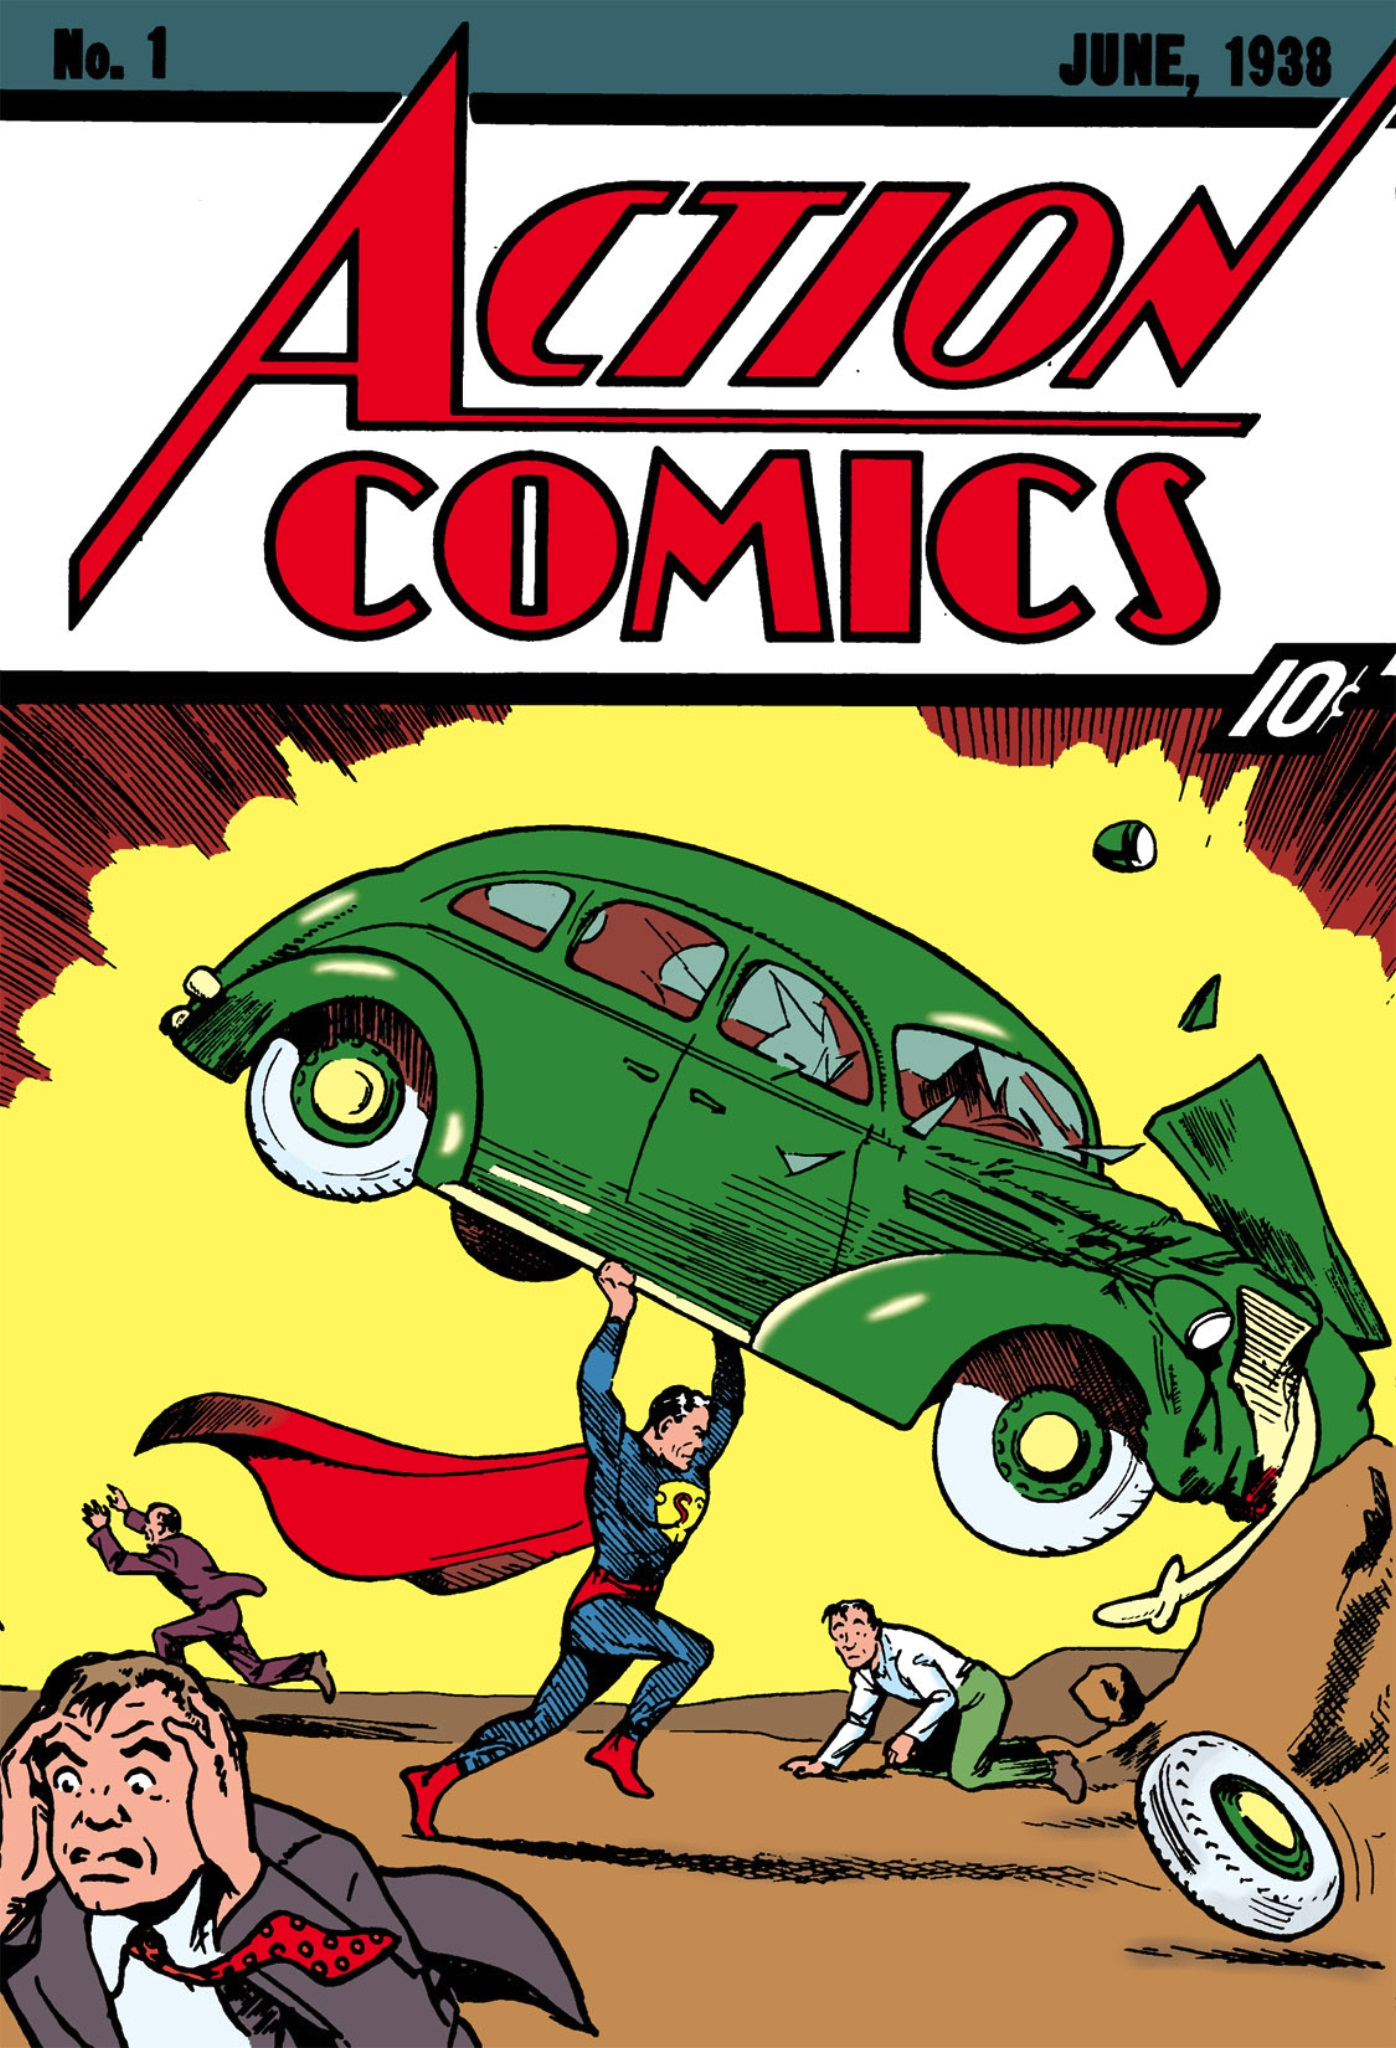 14) Fumetto Action Comics #1 da record